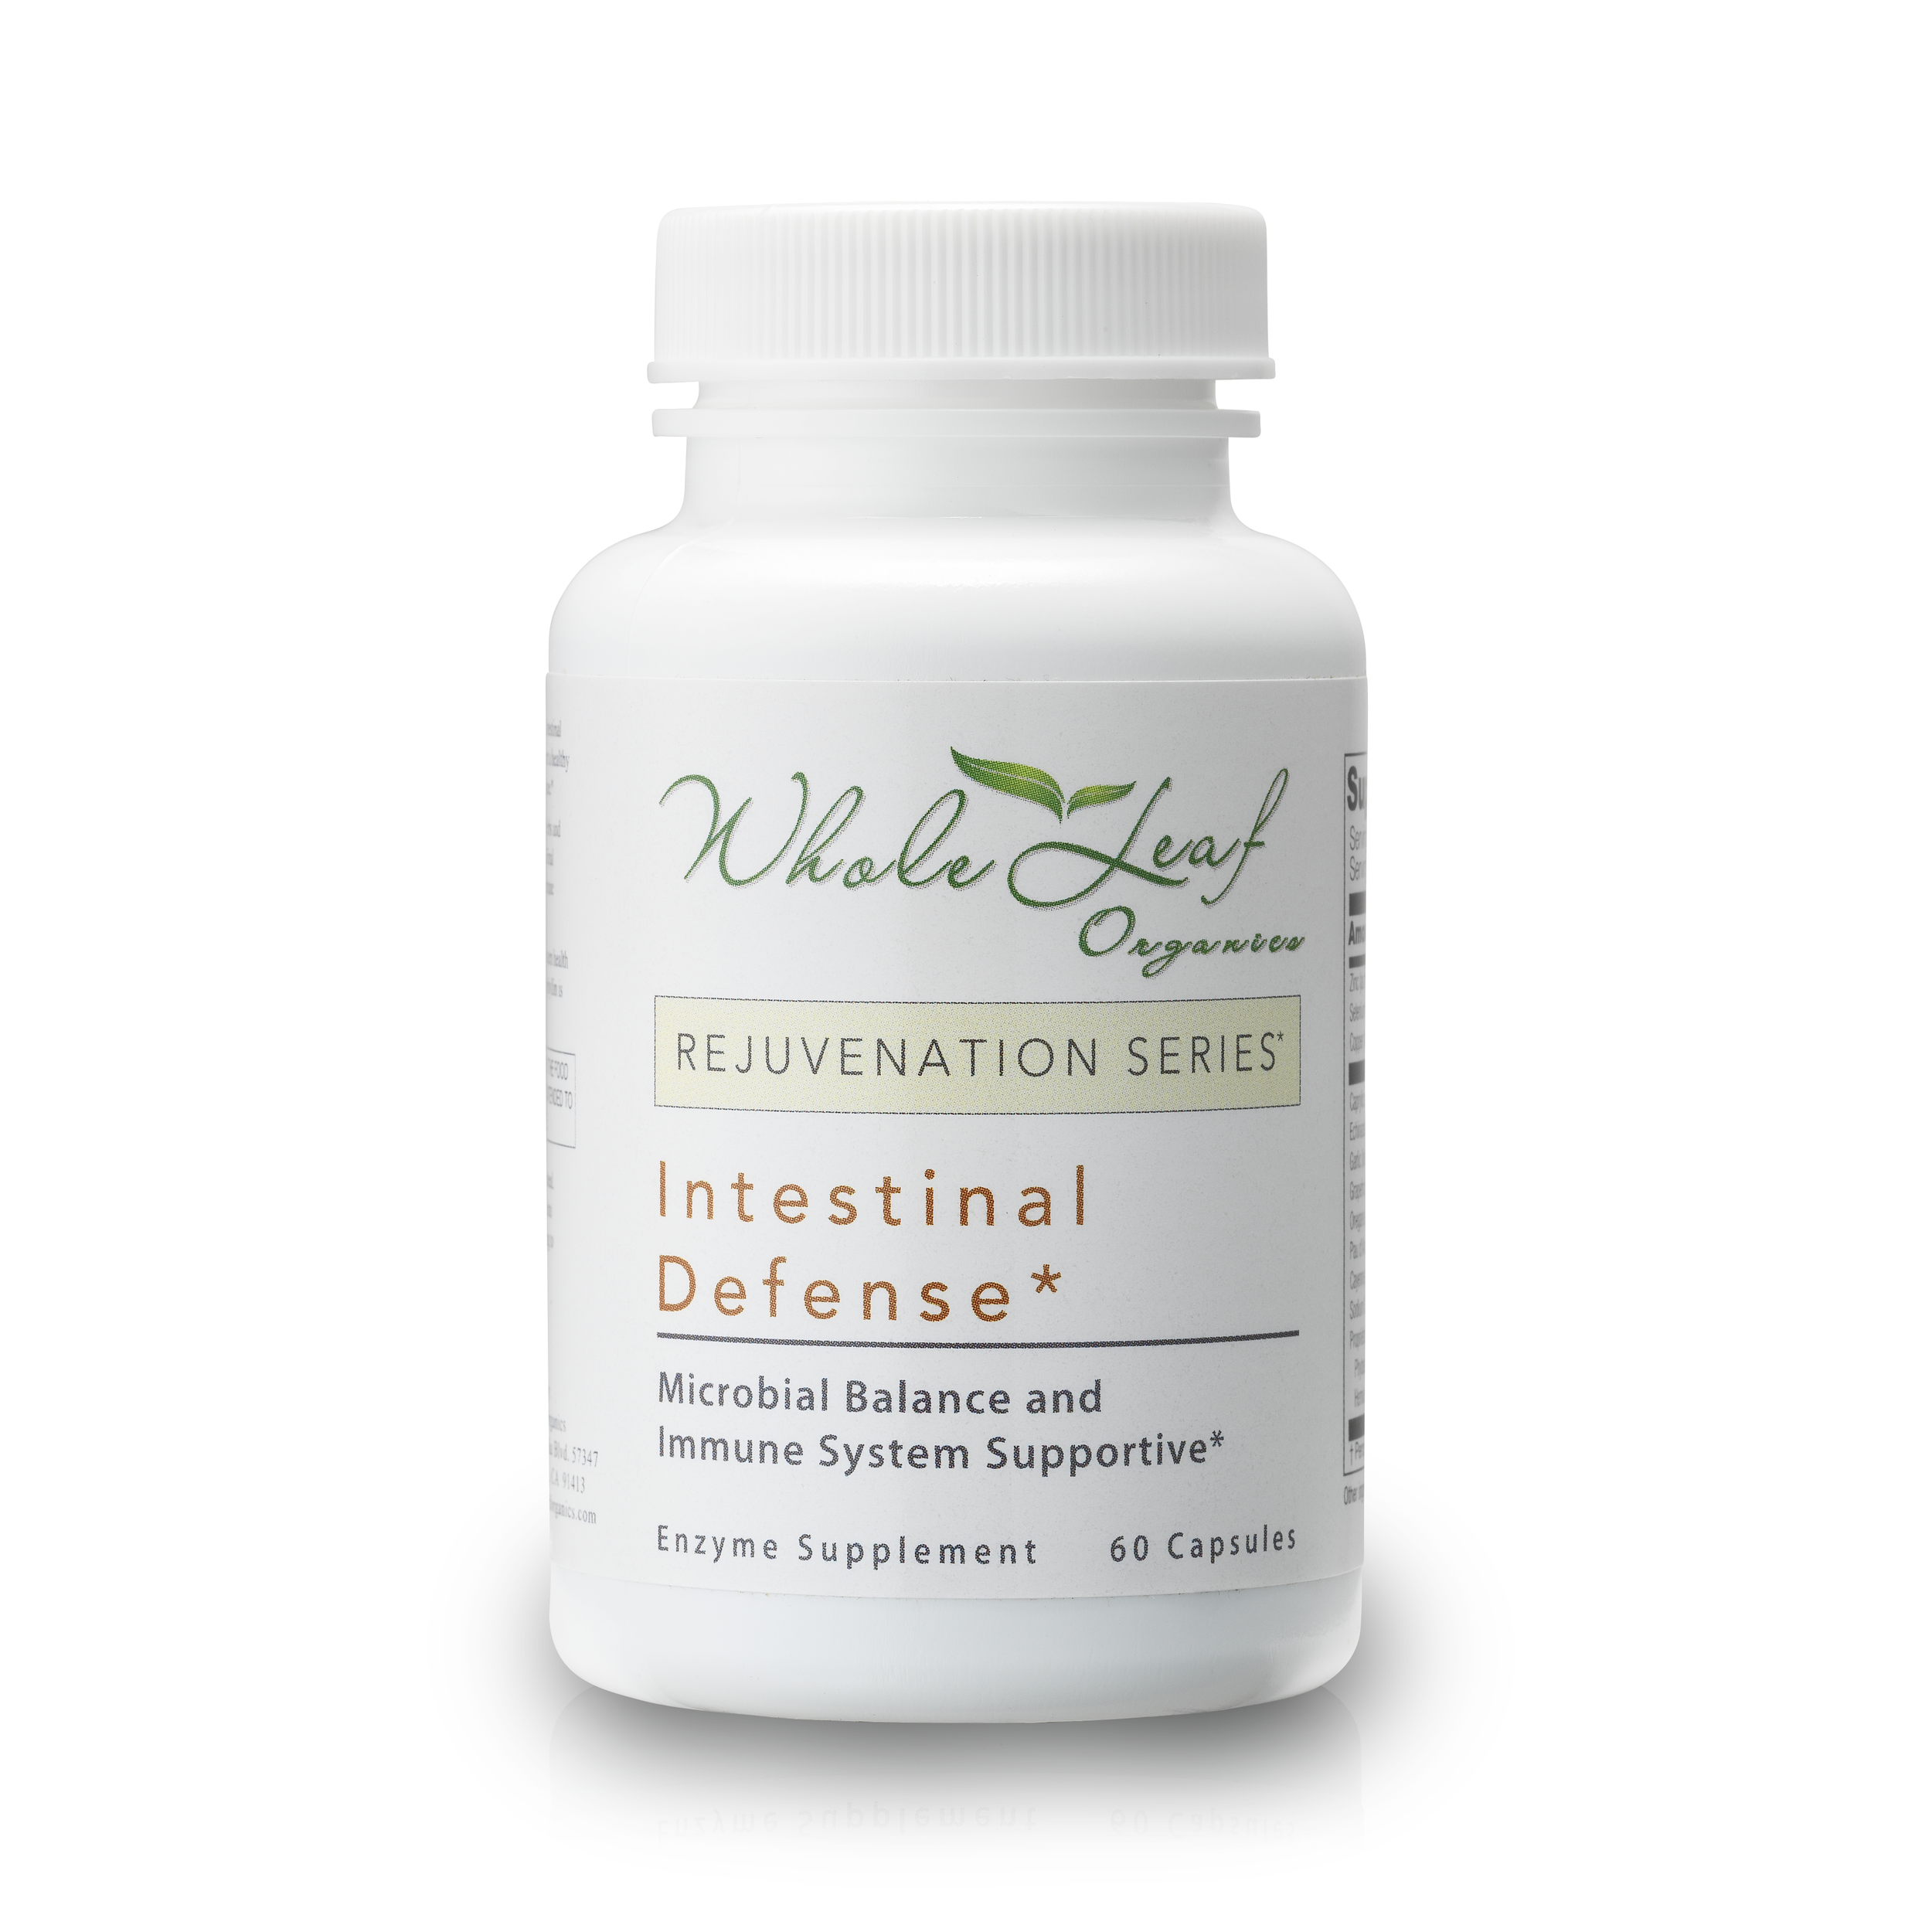 Intestinal  Targets overgrowth in the GI tract, reducing stomach bloat  Take 1 capsule twice a day with food.